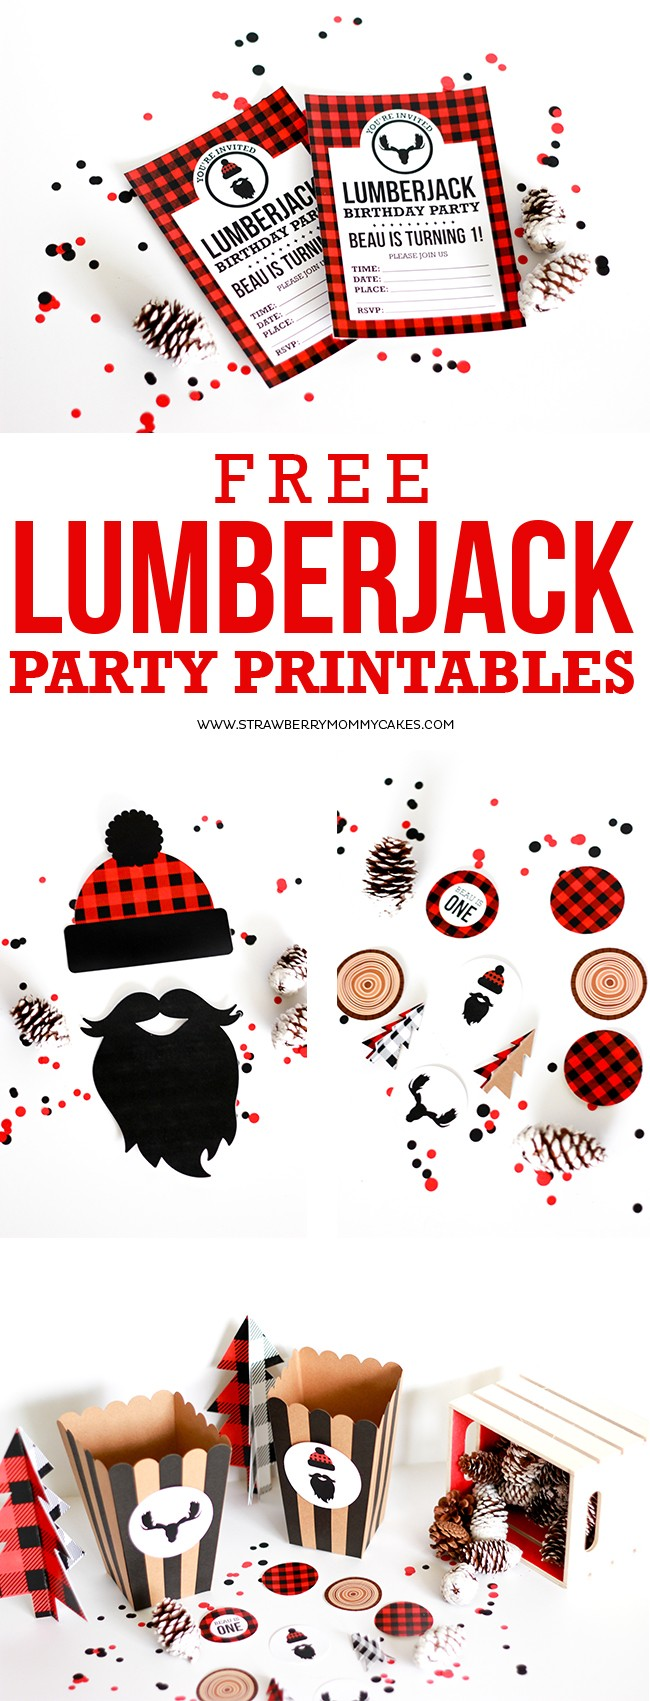 free-lumberjack-party-printables